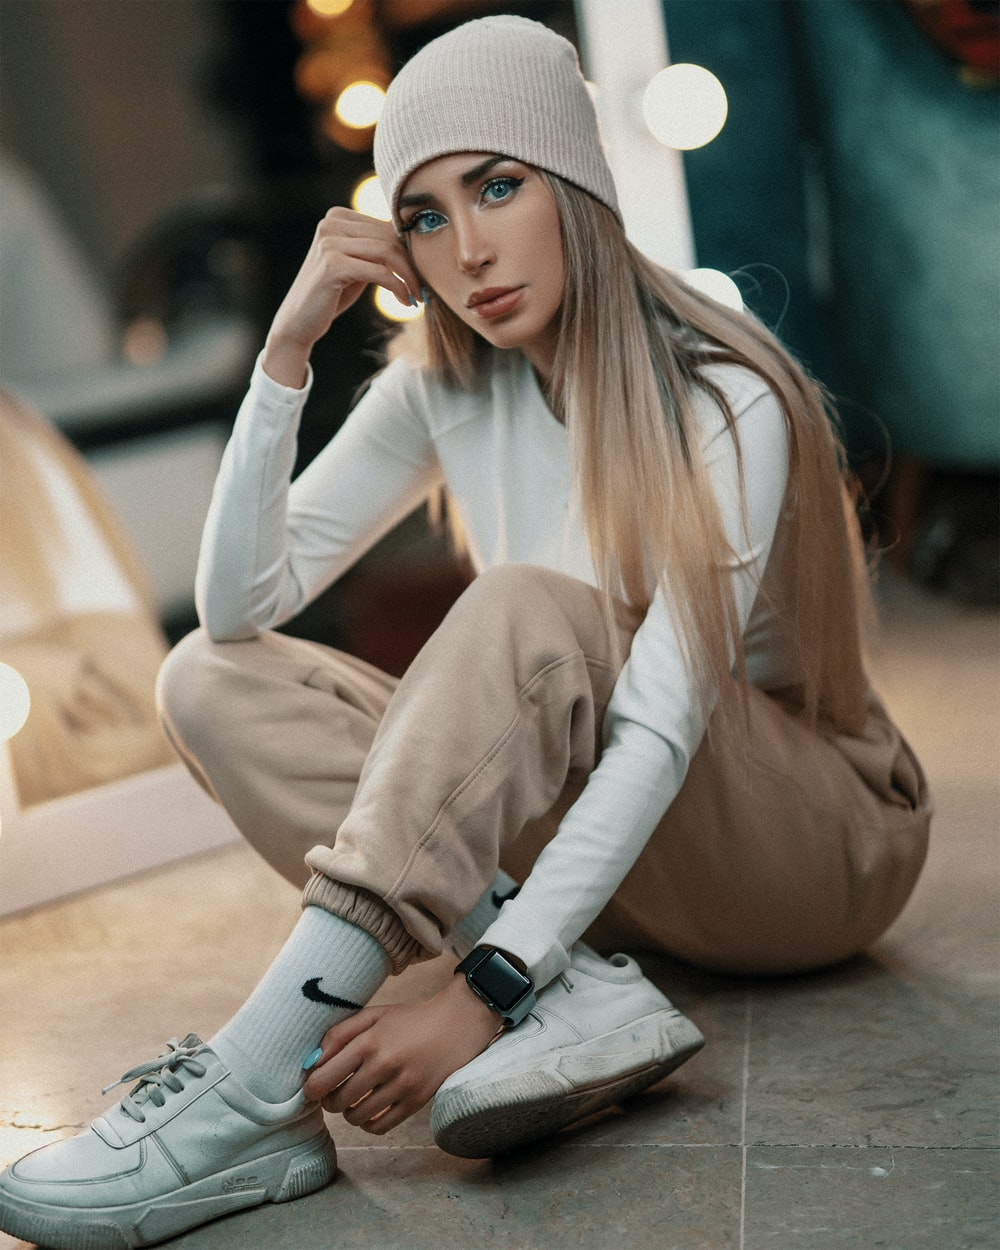 woman in white long sleeve shirt and white knit cap sitting on floor